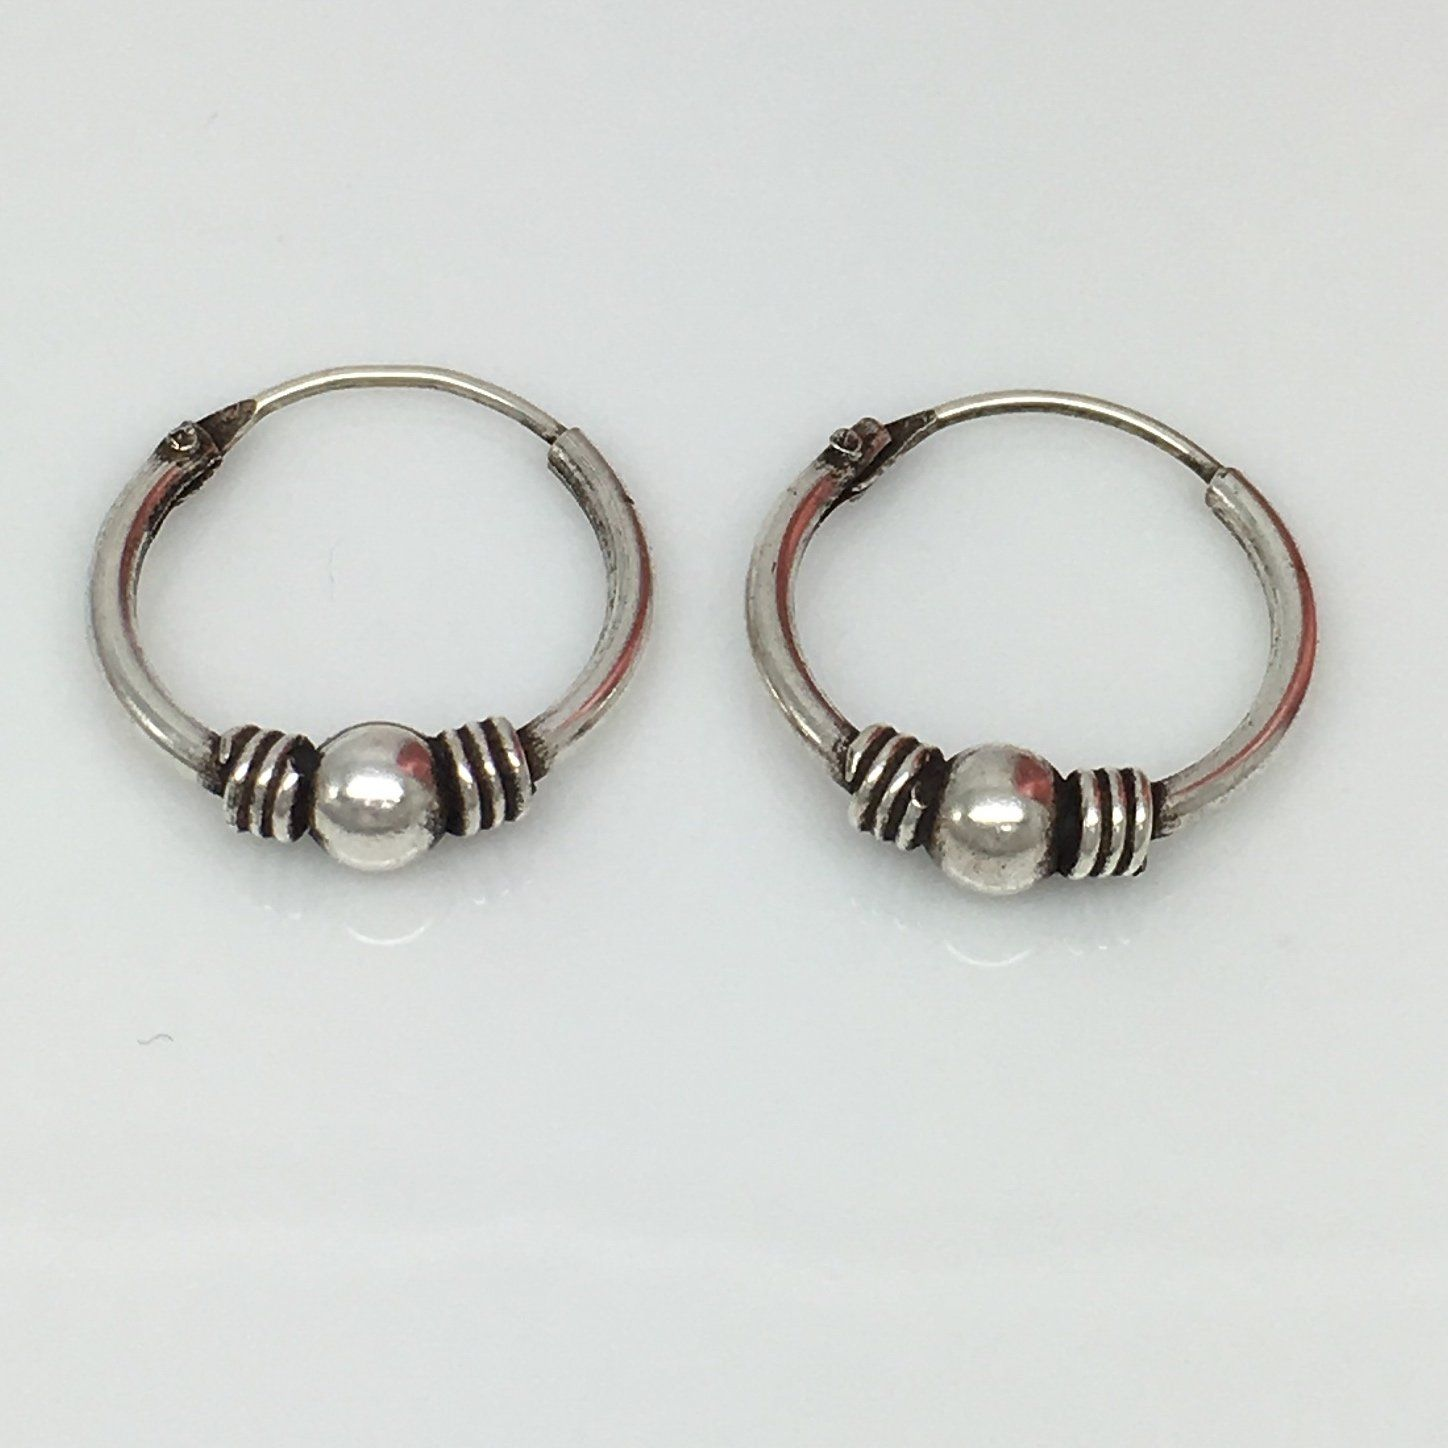 Silver wire hoop earrings for men thin sterling silver hoop